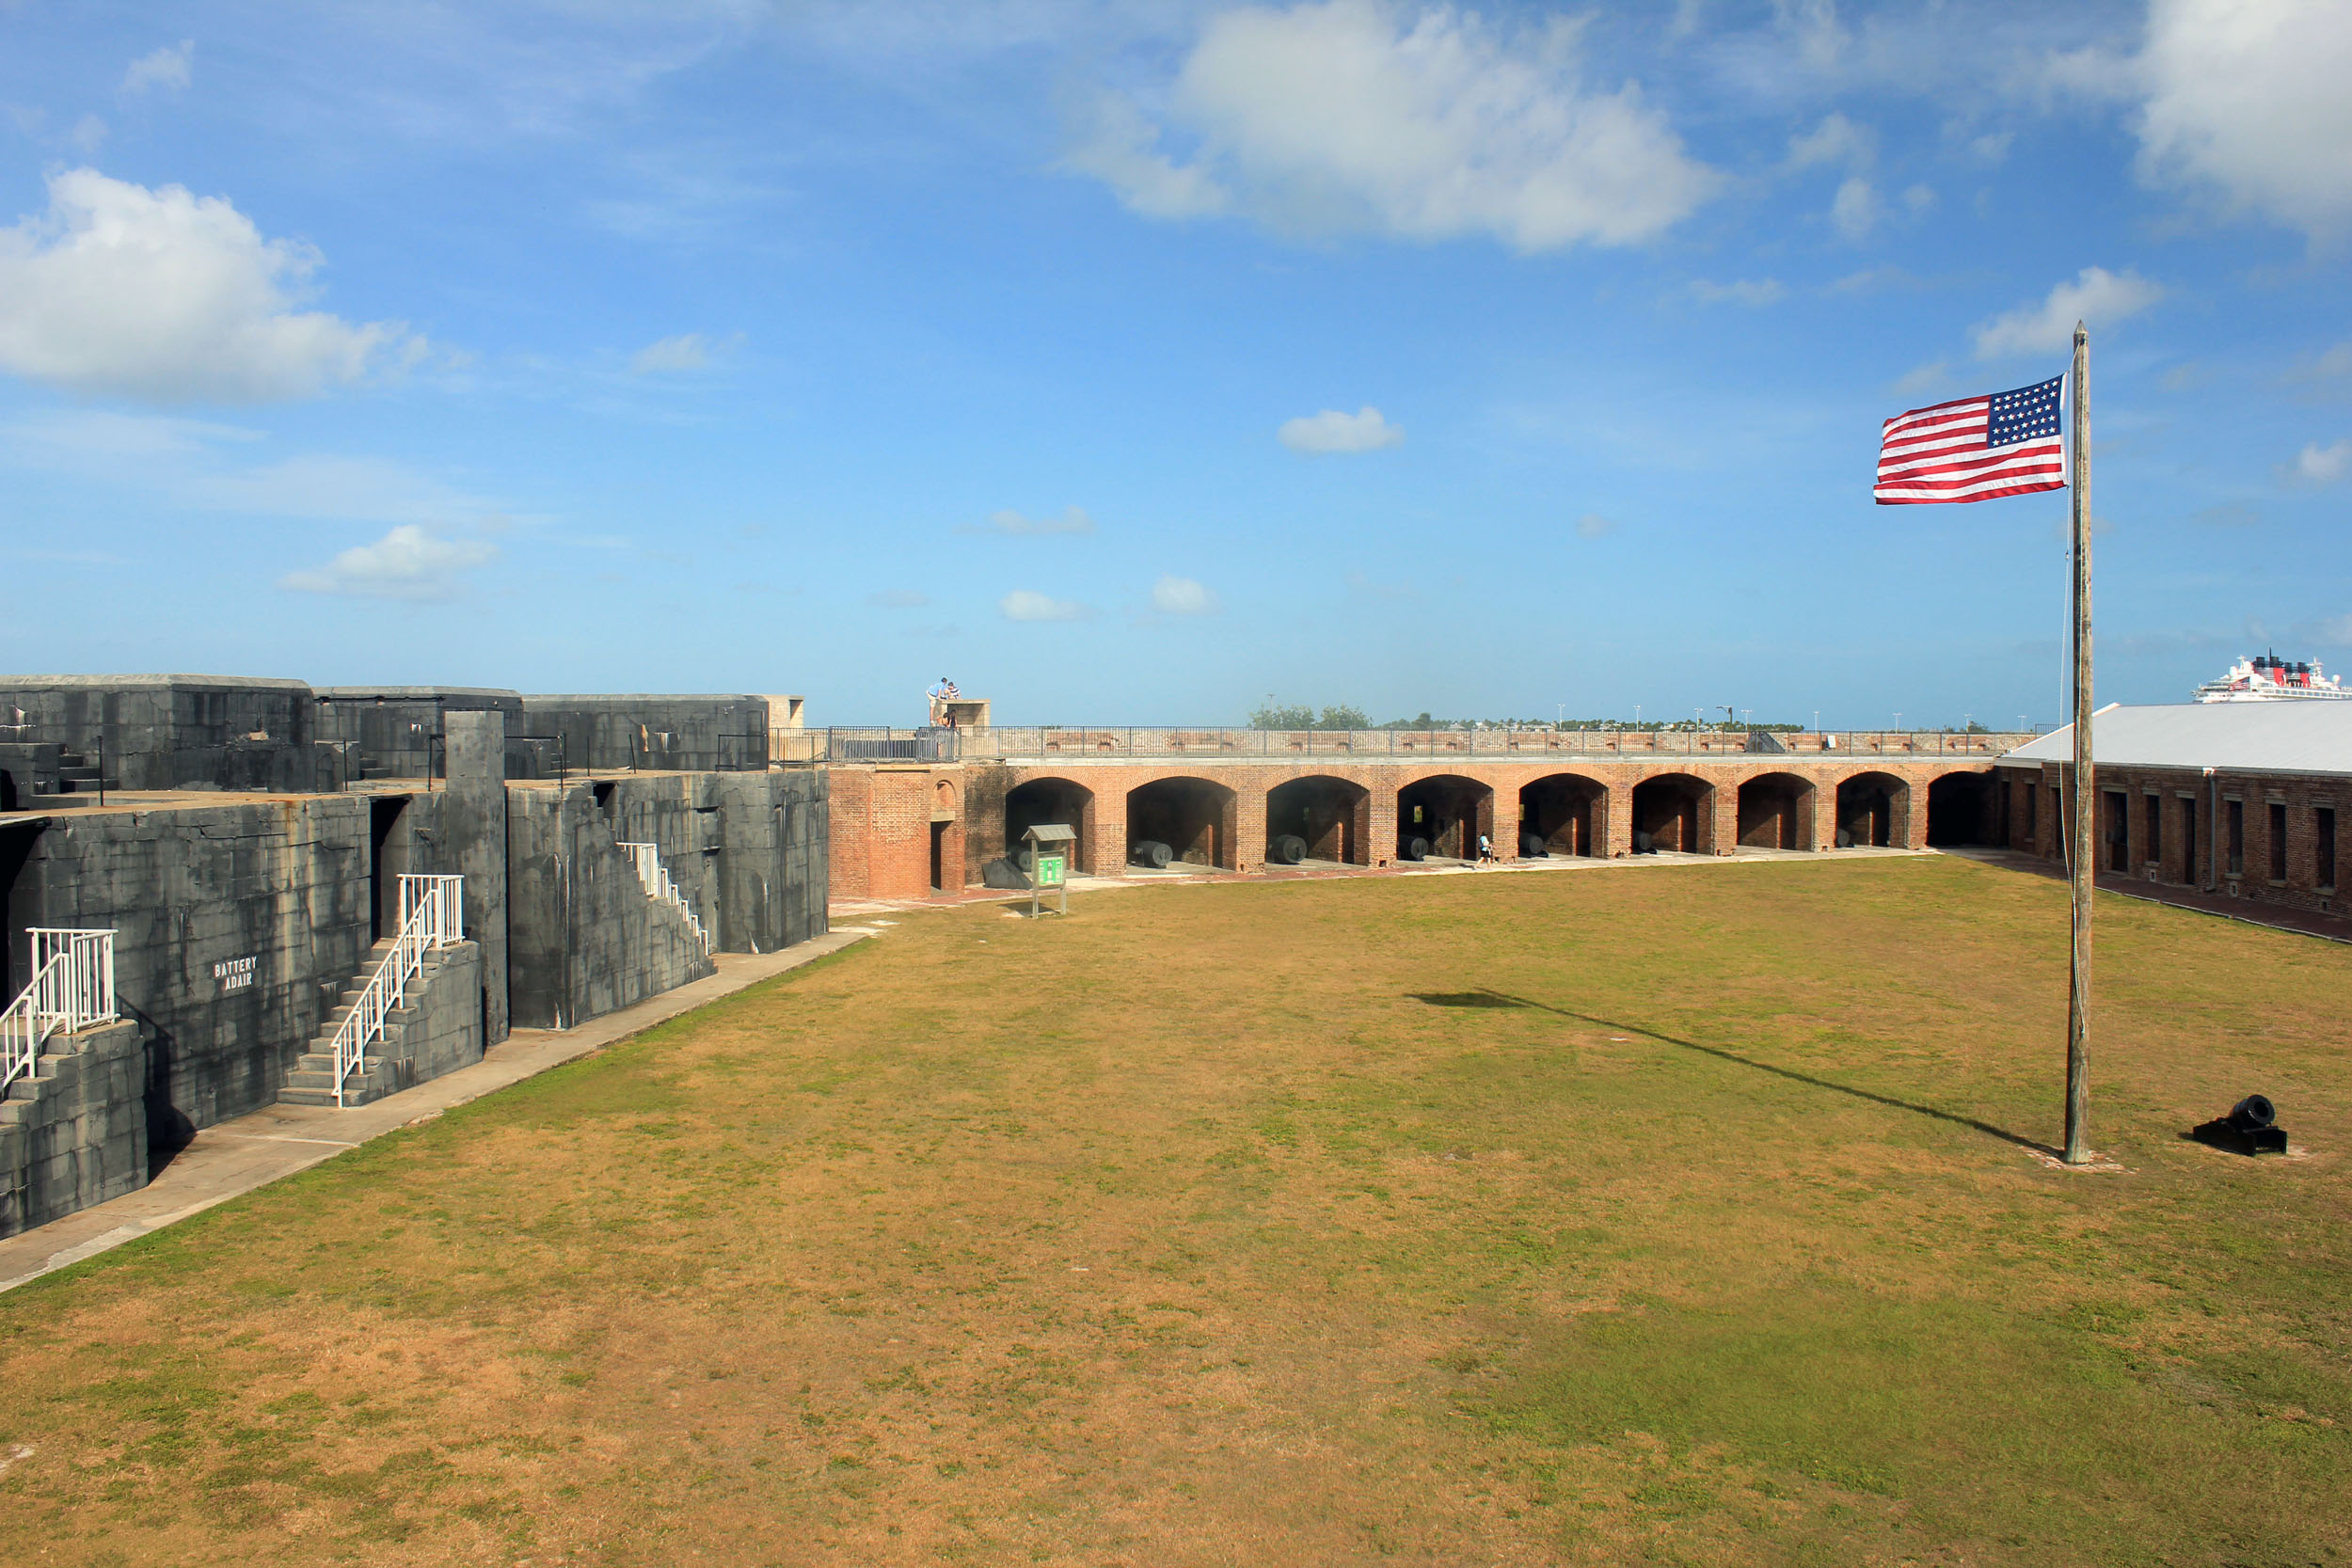 fort zachary taylor Fort zachary taylor historic state park: pleasant surprise - see 5,452 traveler reviews, 2,835 candid photos, and great deals for key west, fl, at tripadvisor.